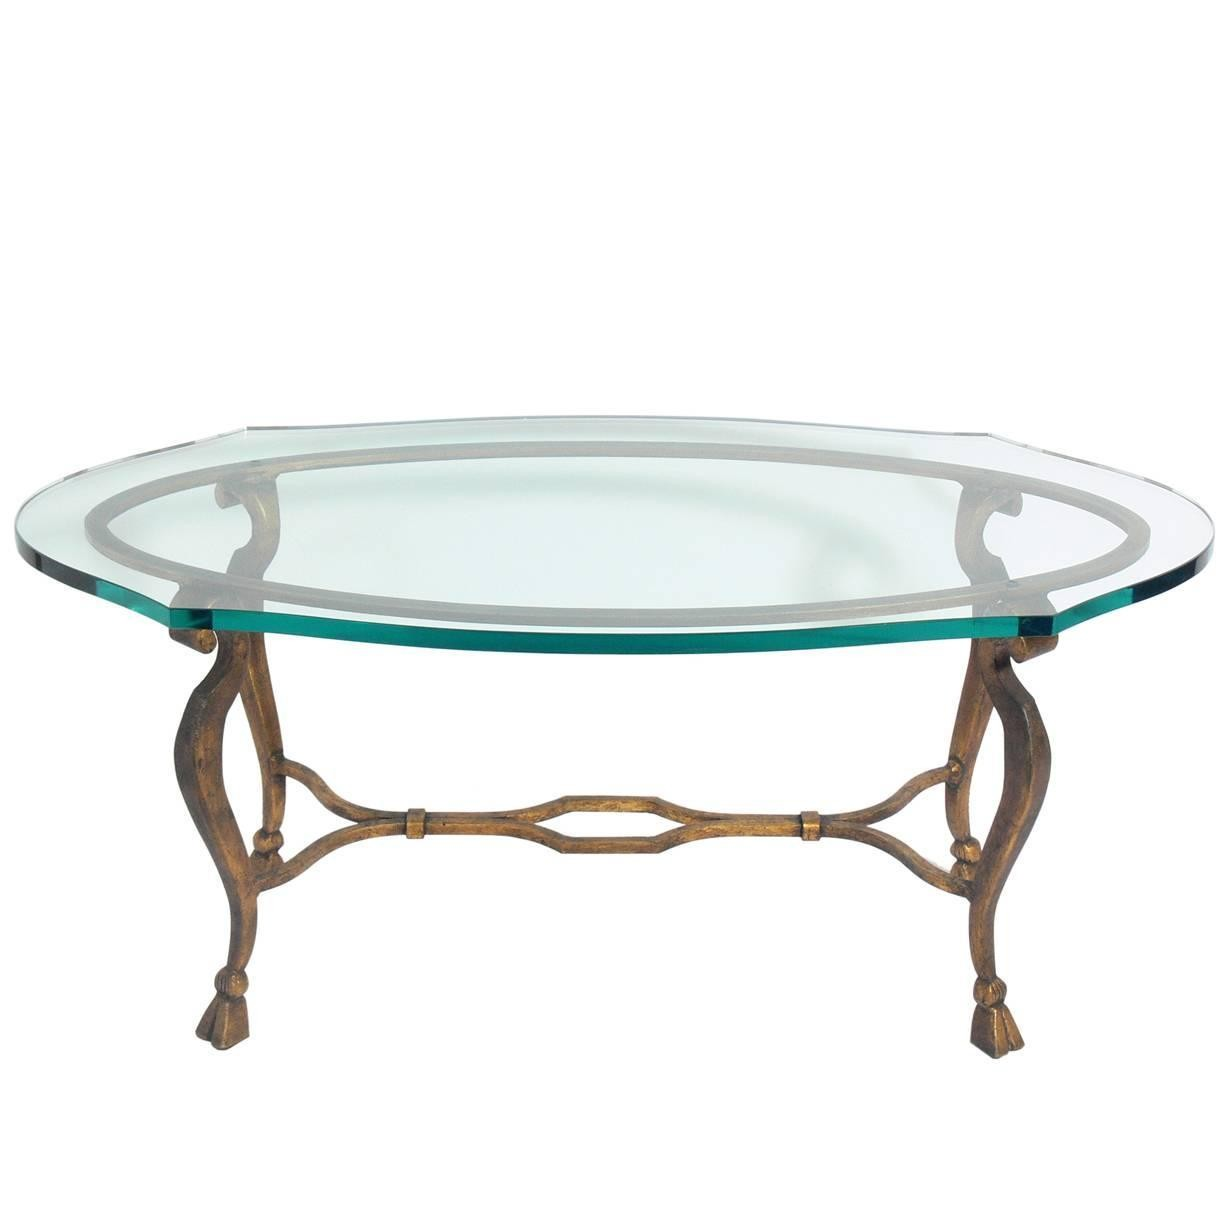 Elegant Gilt Metal Oval Coffee Table For Sale At 1stdibs Tisch Metall Oval